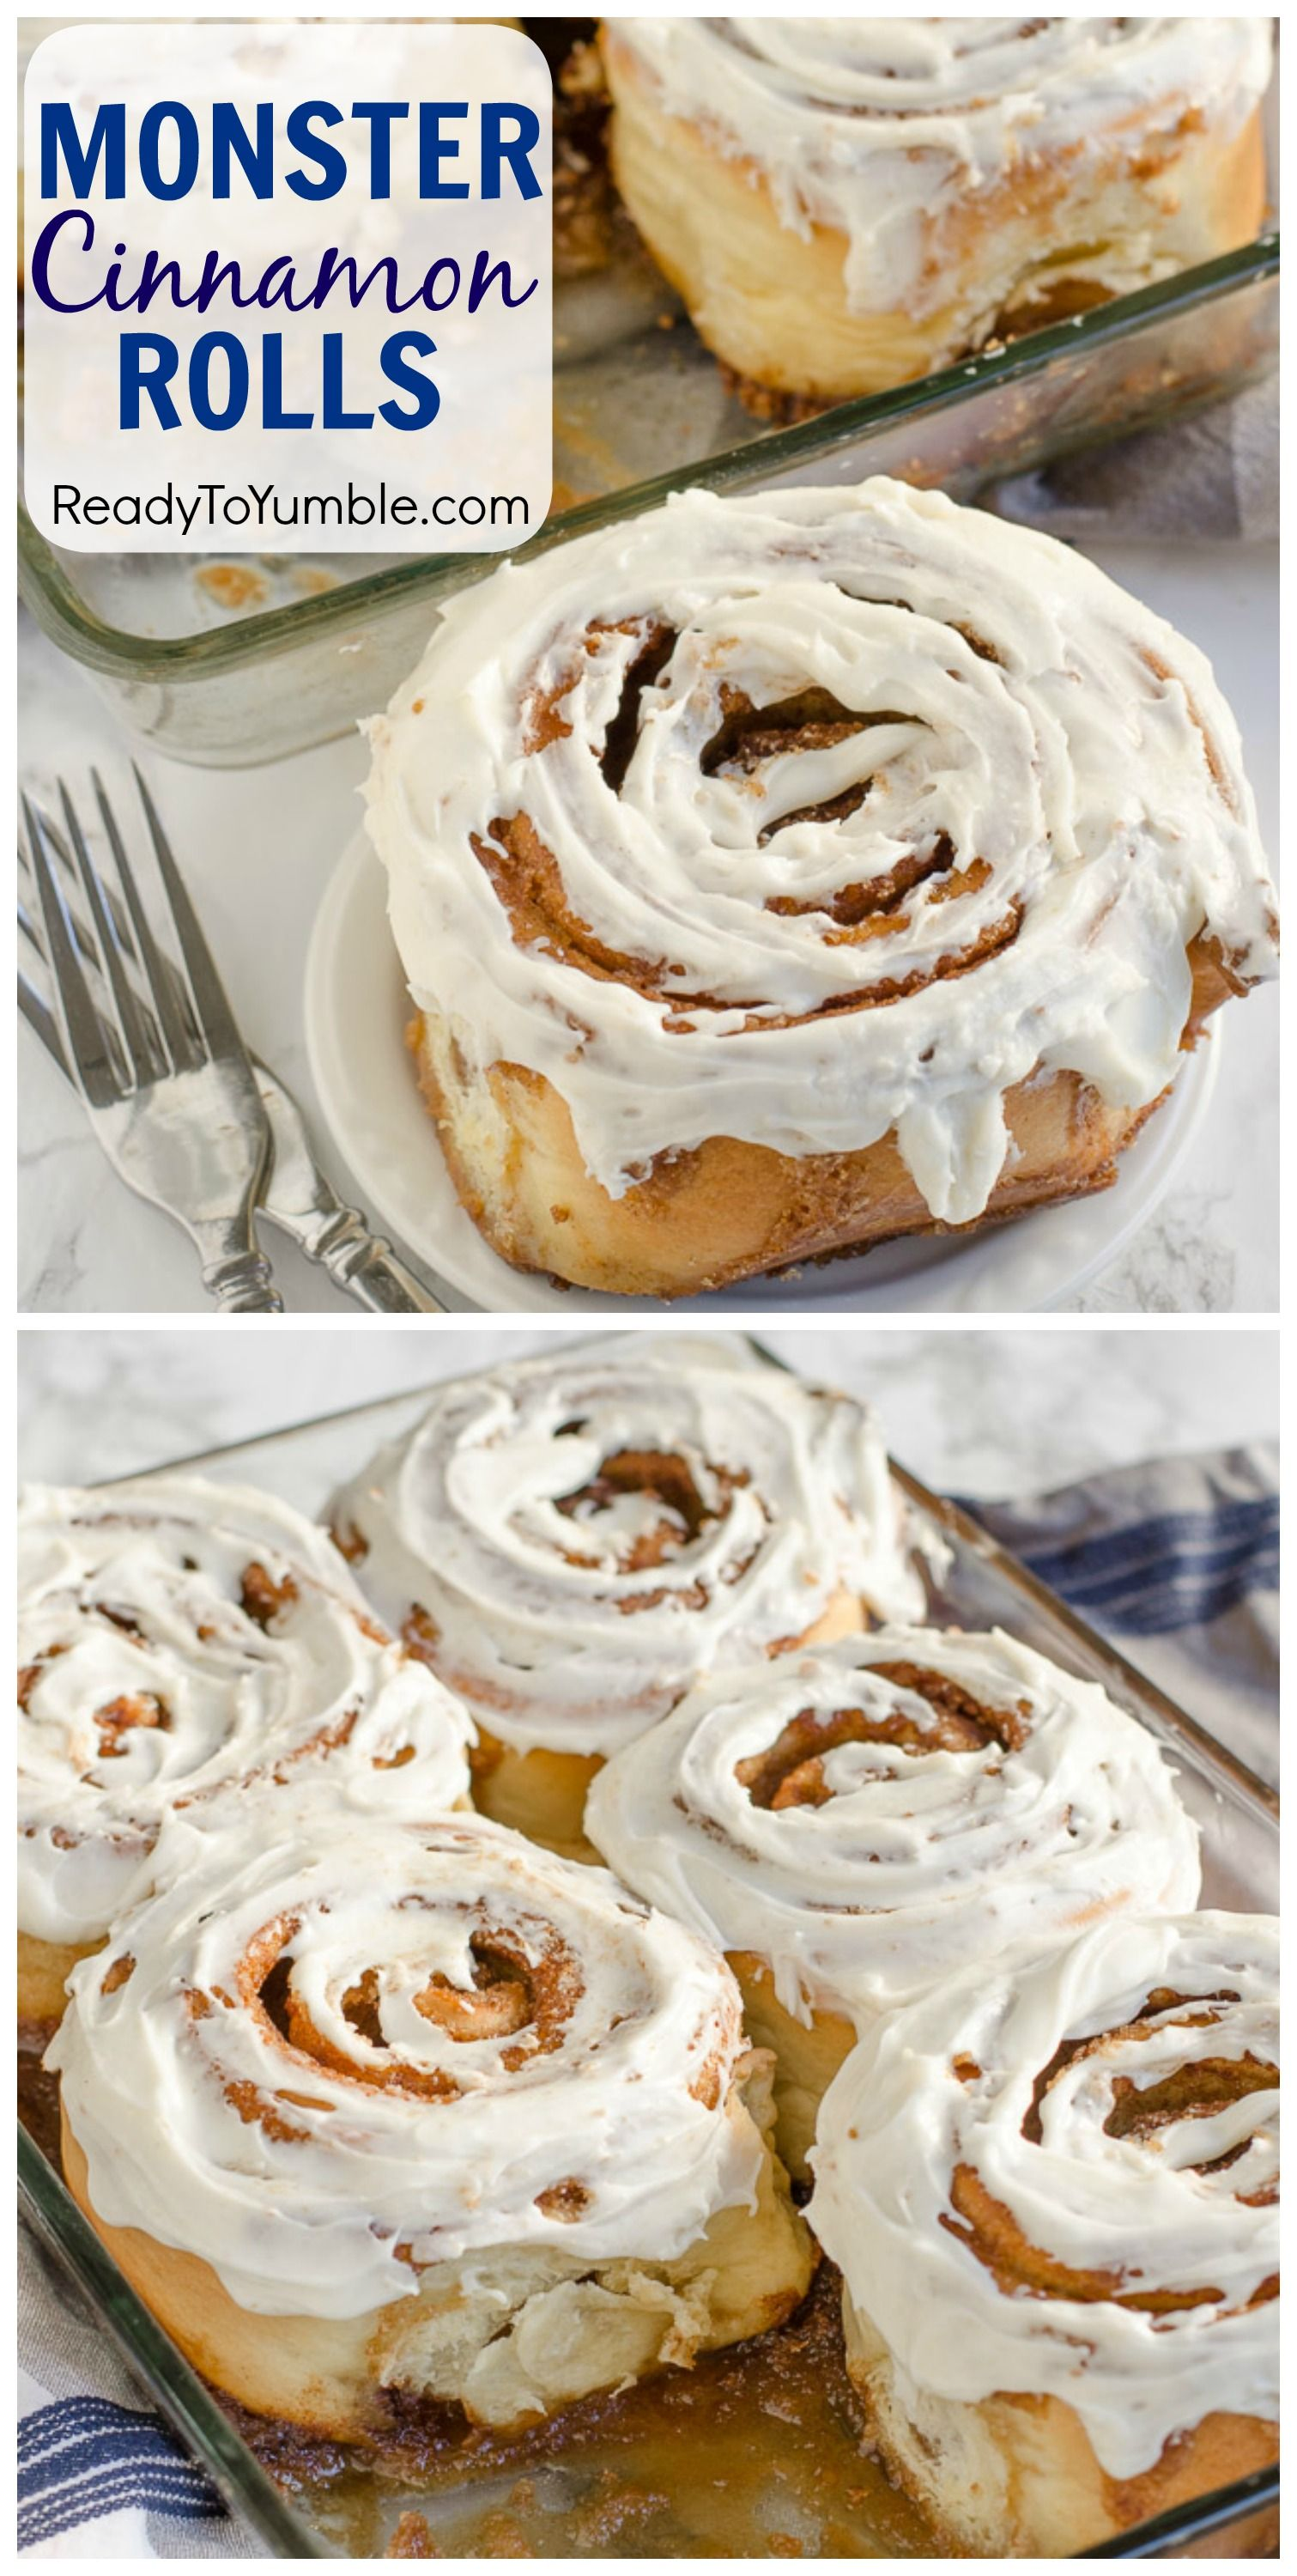 Monster Cinnamon Rolls + BIG EXCITING NEWS – Ready to Yumble